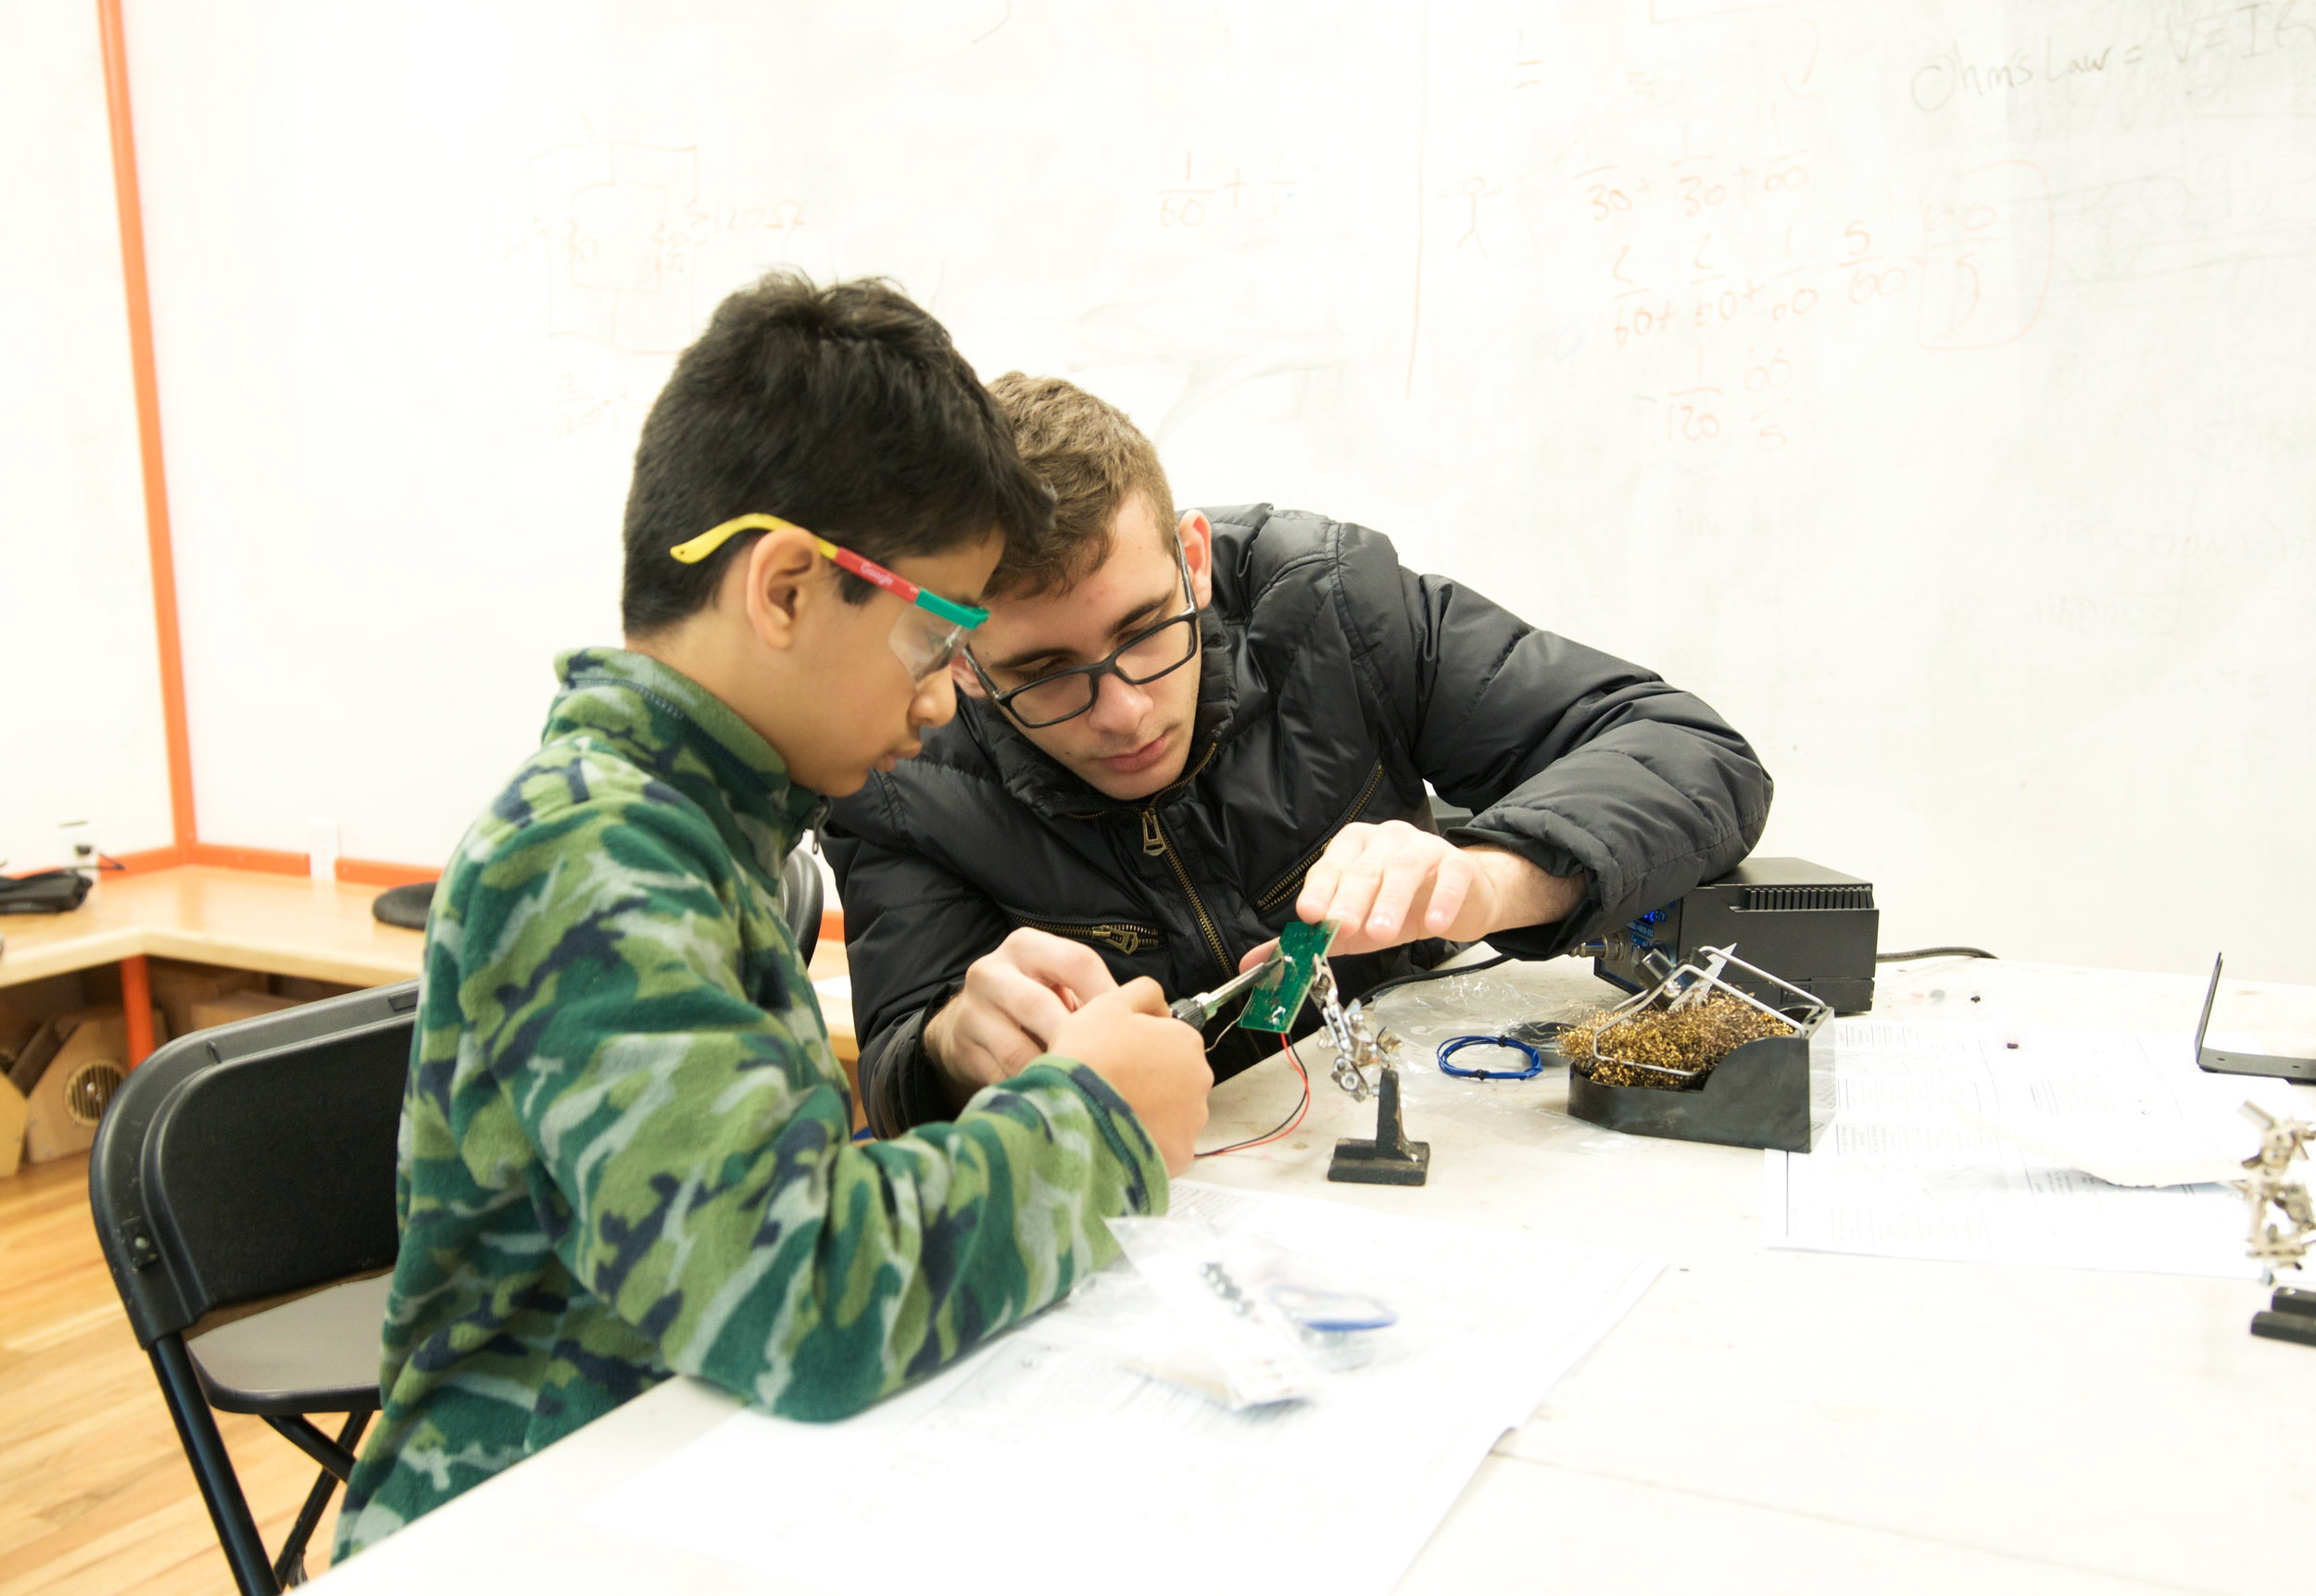 Mentor teaching student soldering on a circuitboard during program